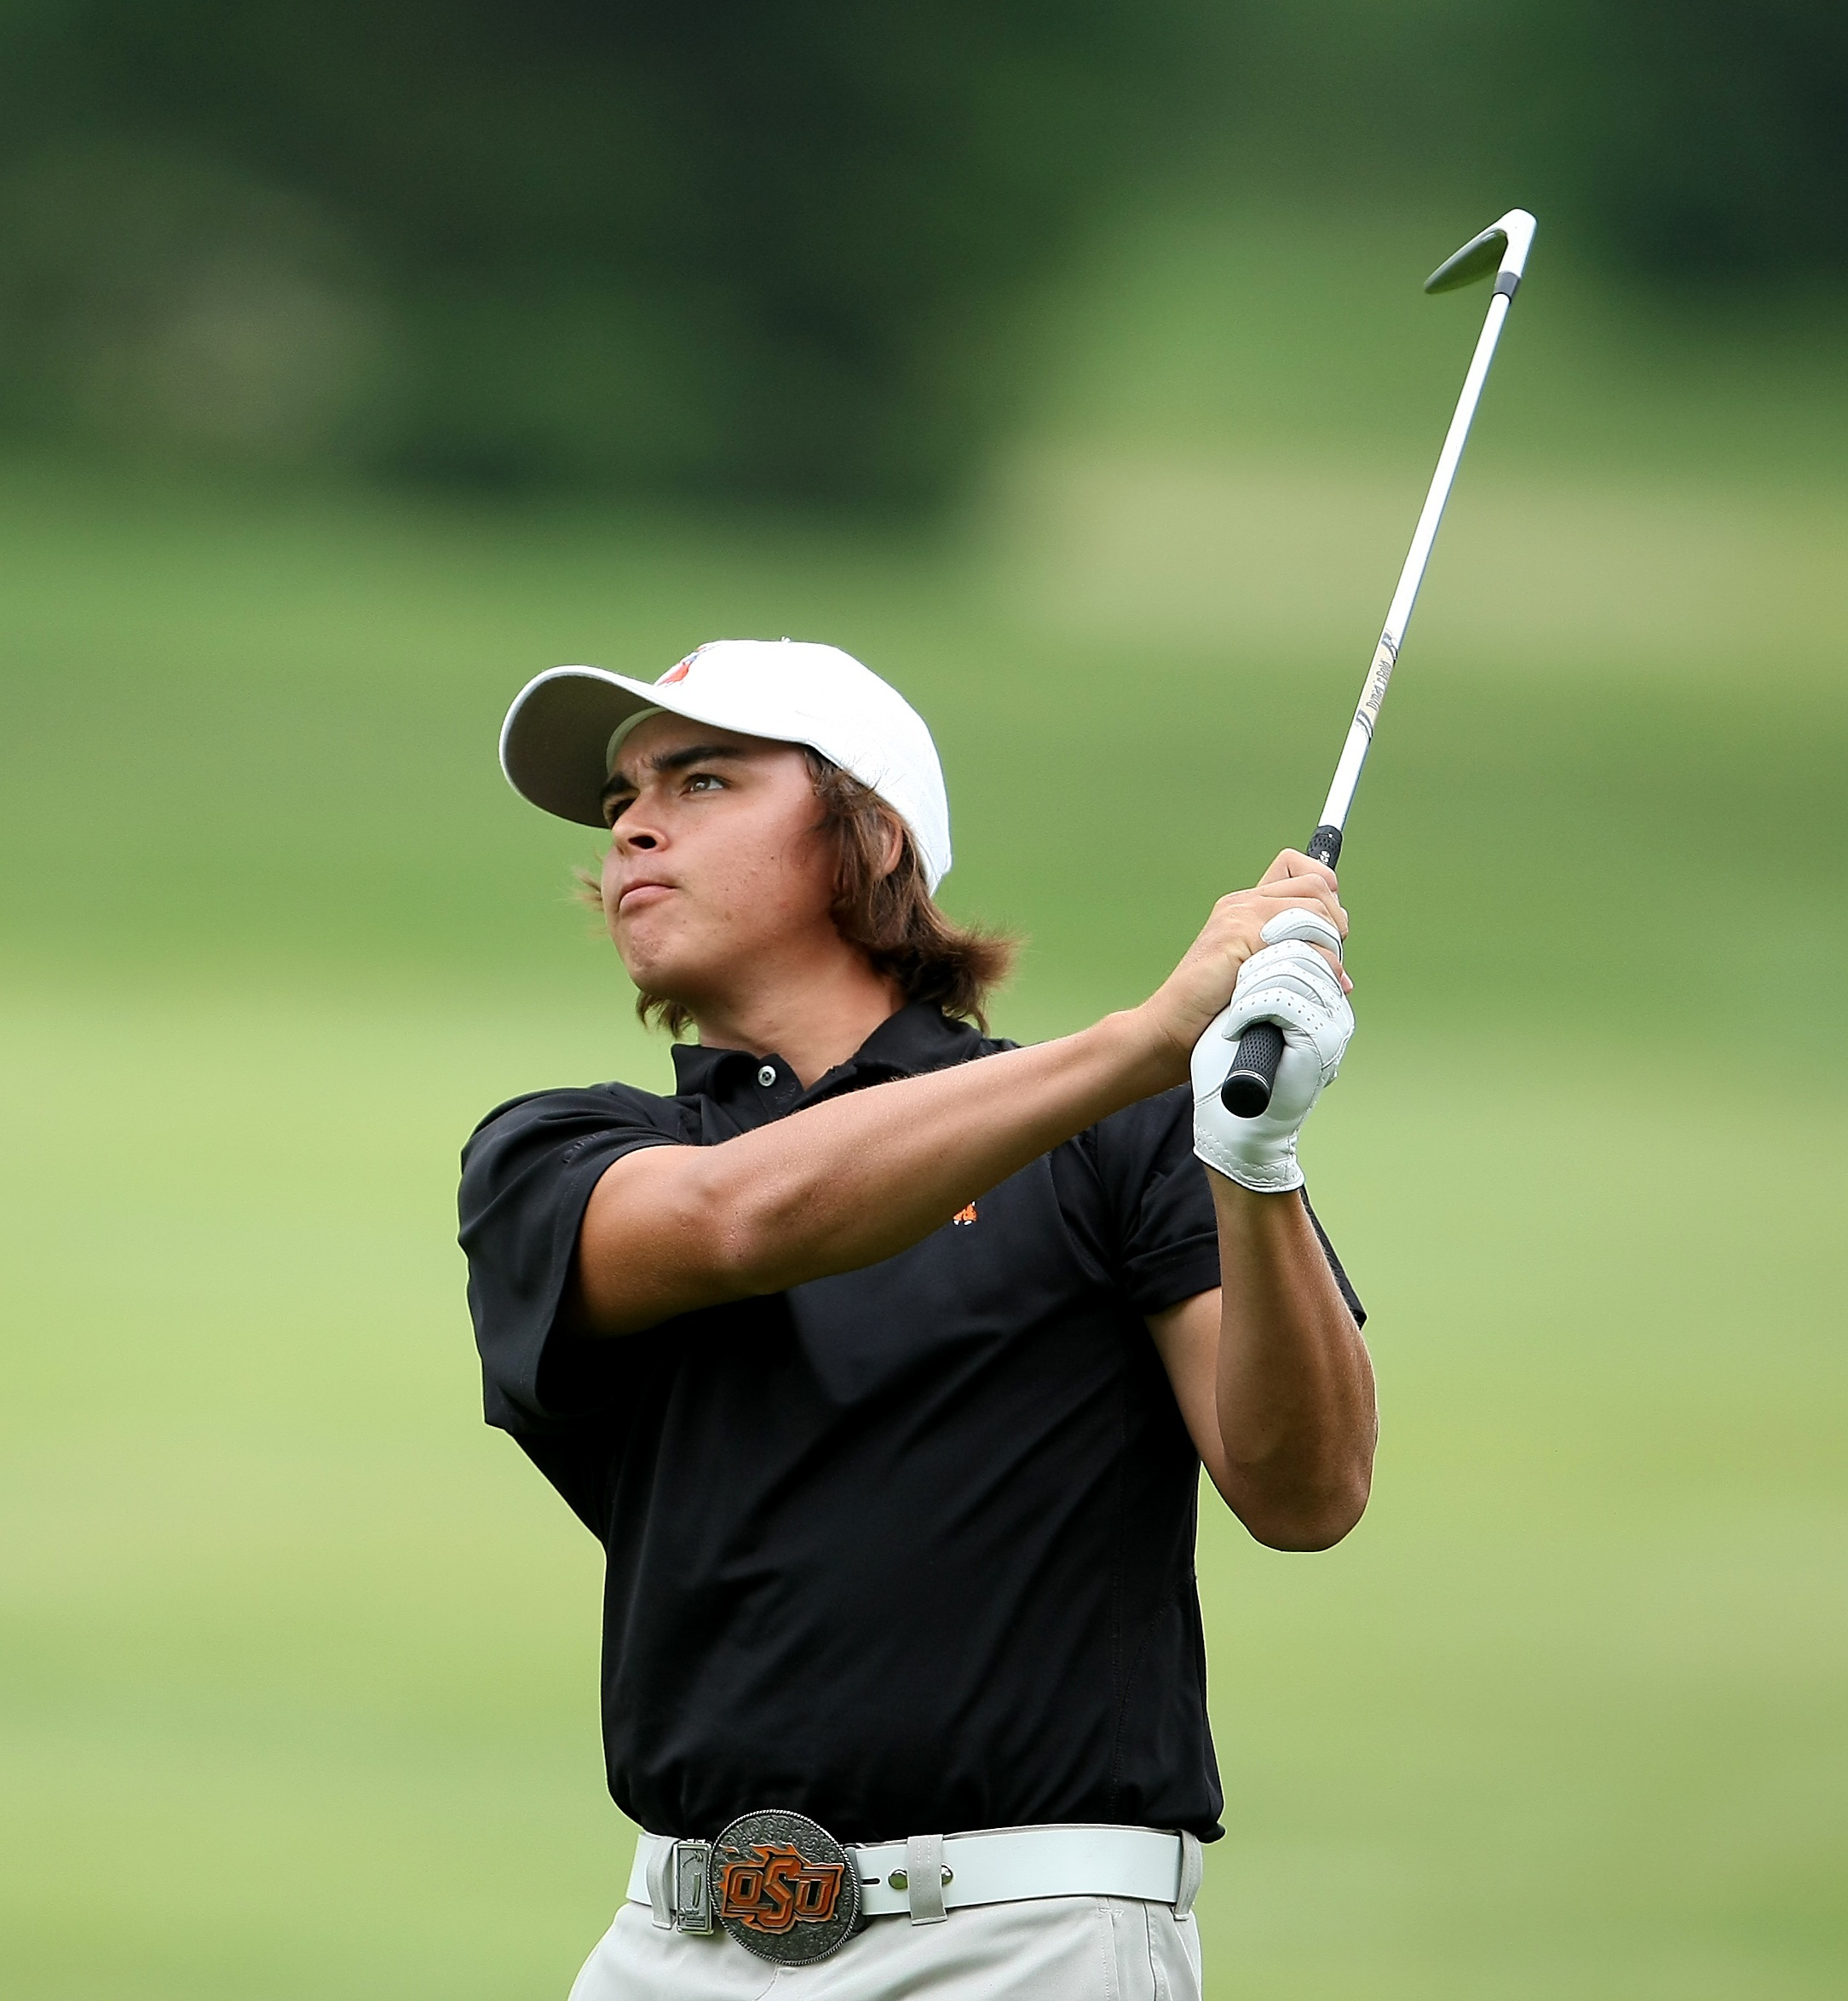 Oklahoma State's Rickie Fowler hits his second shot on the ninth hole during the 2009 NCAA Golf Championships at Inverness Club.